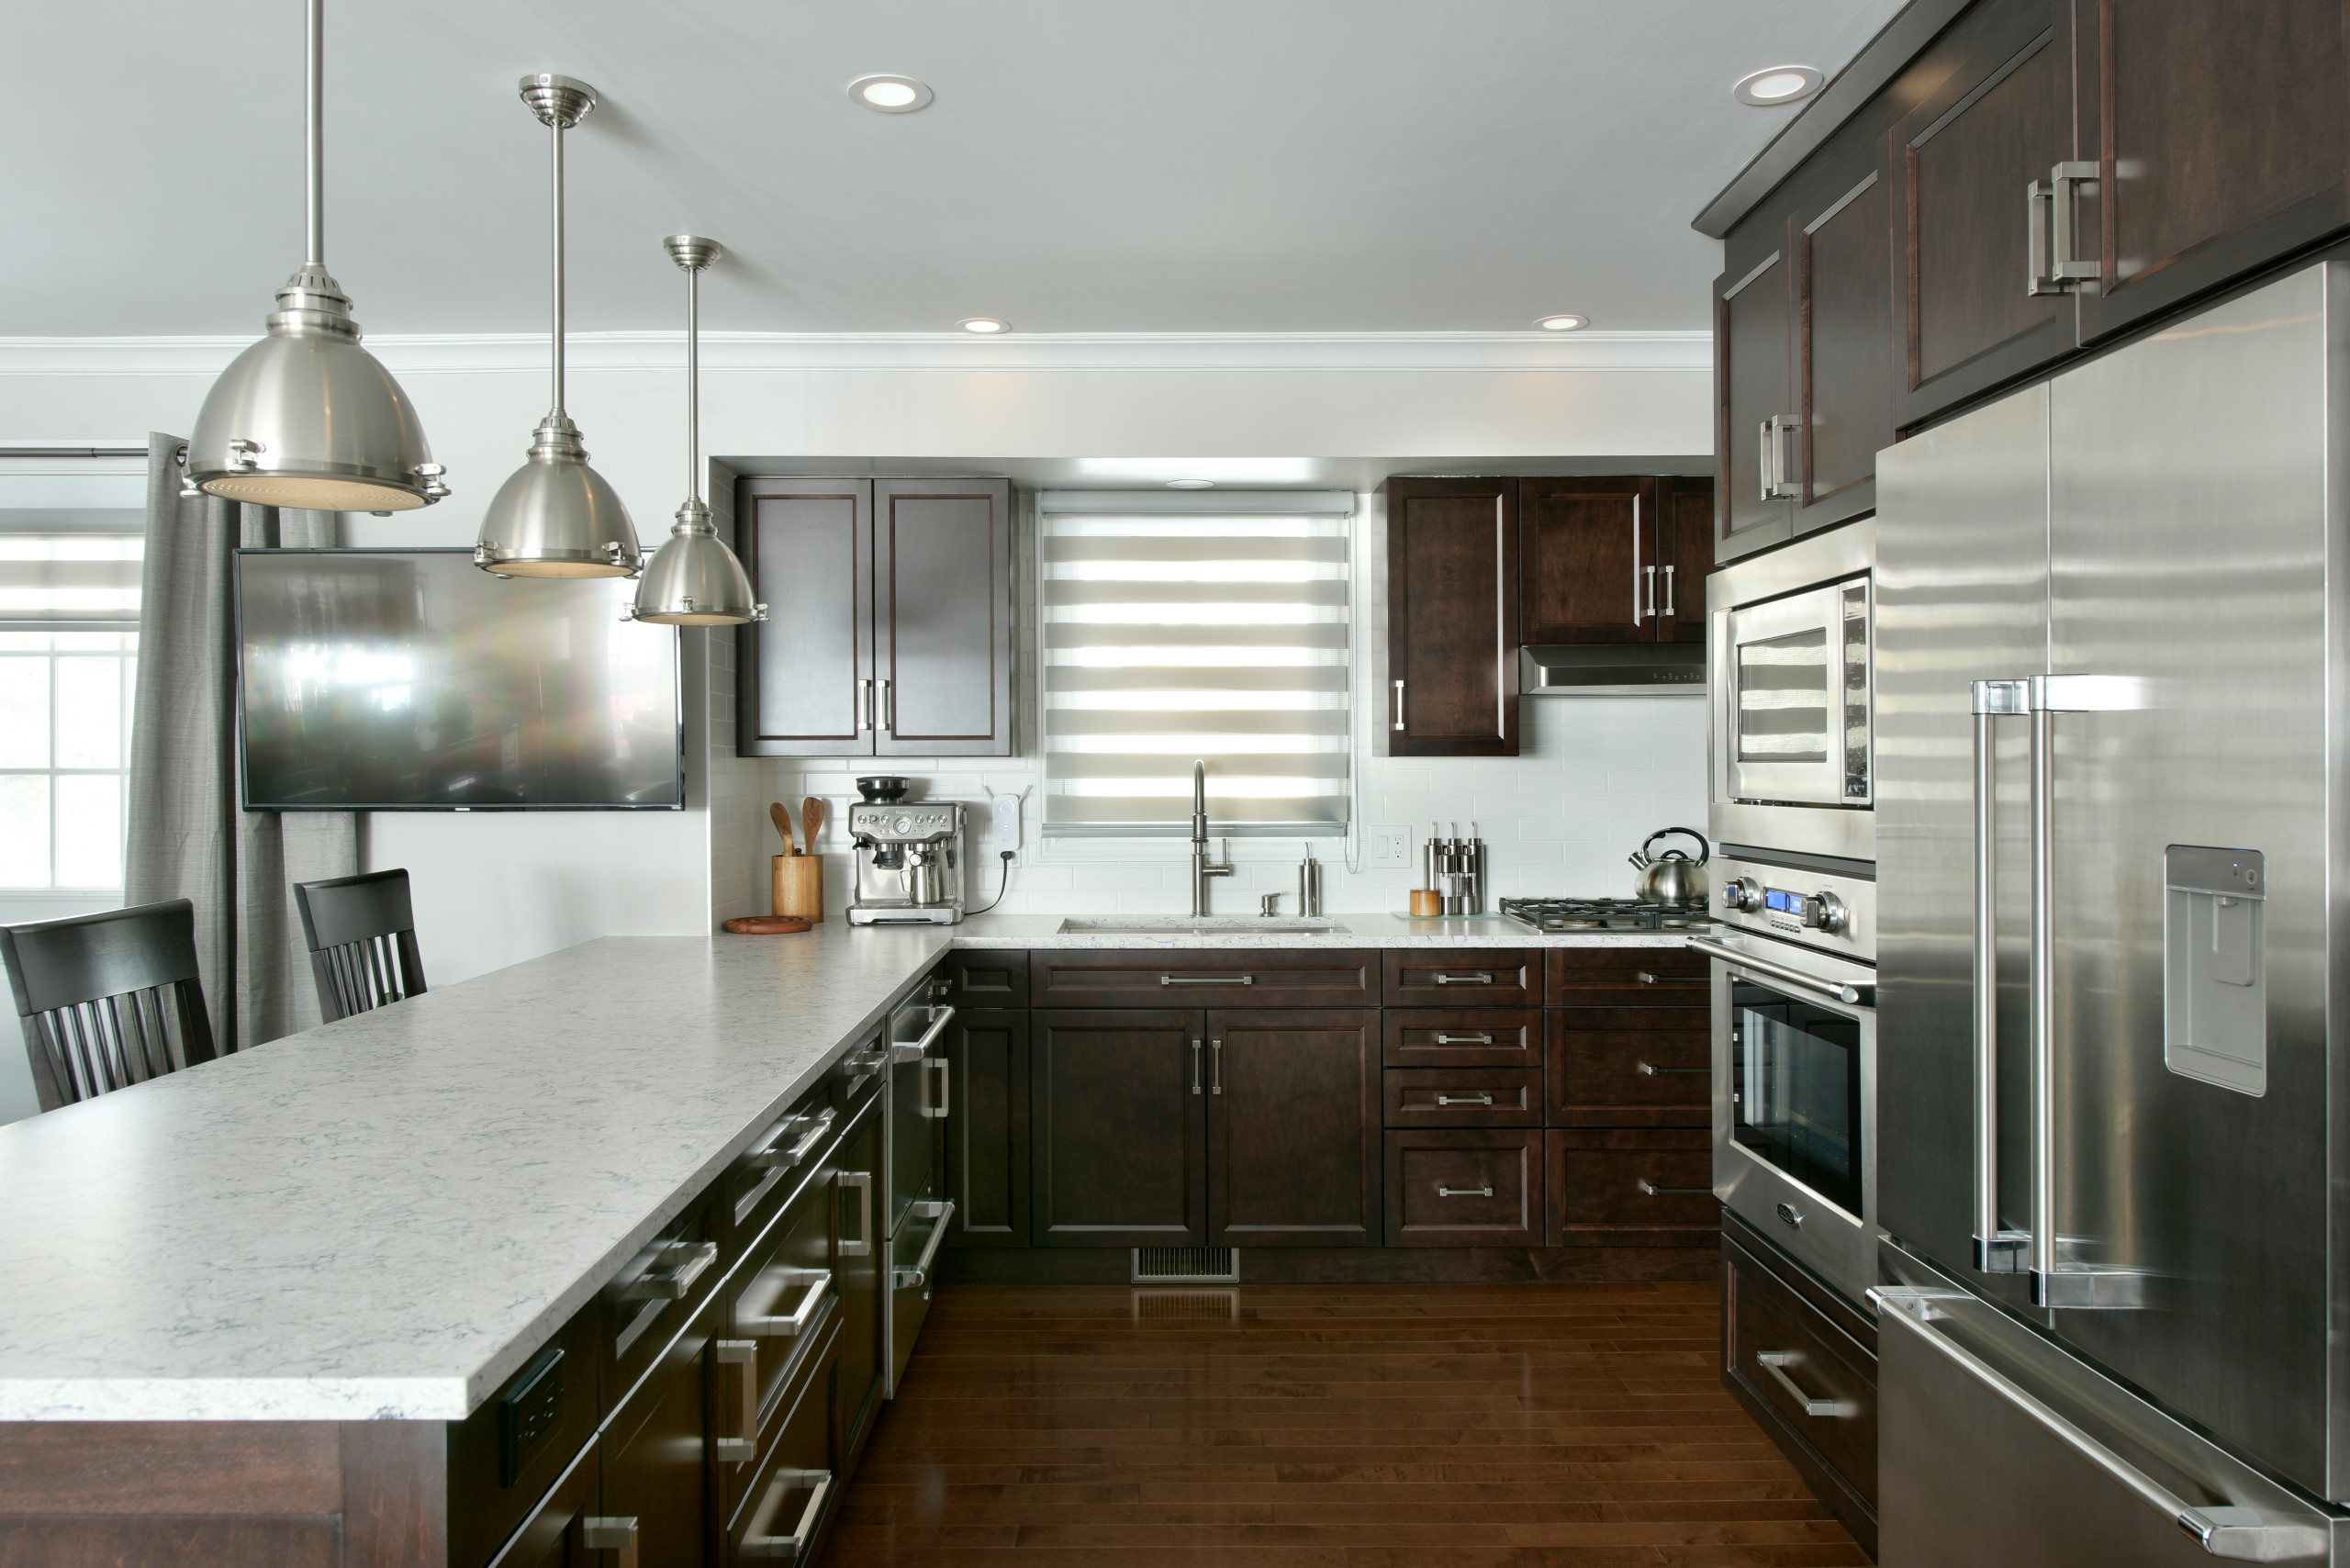 A freshly renovated kitchen by Deslaurier